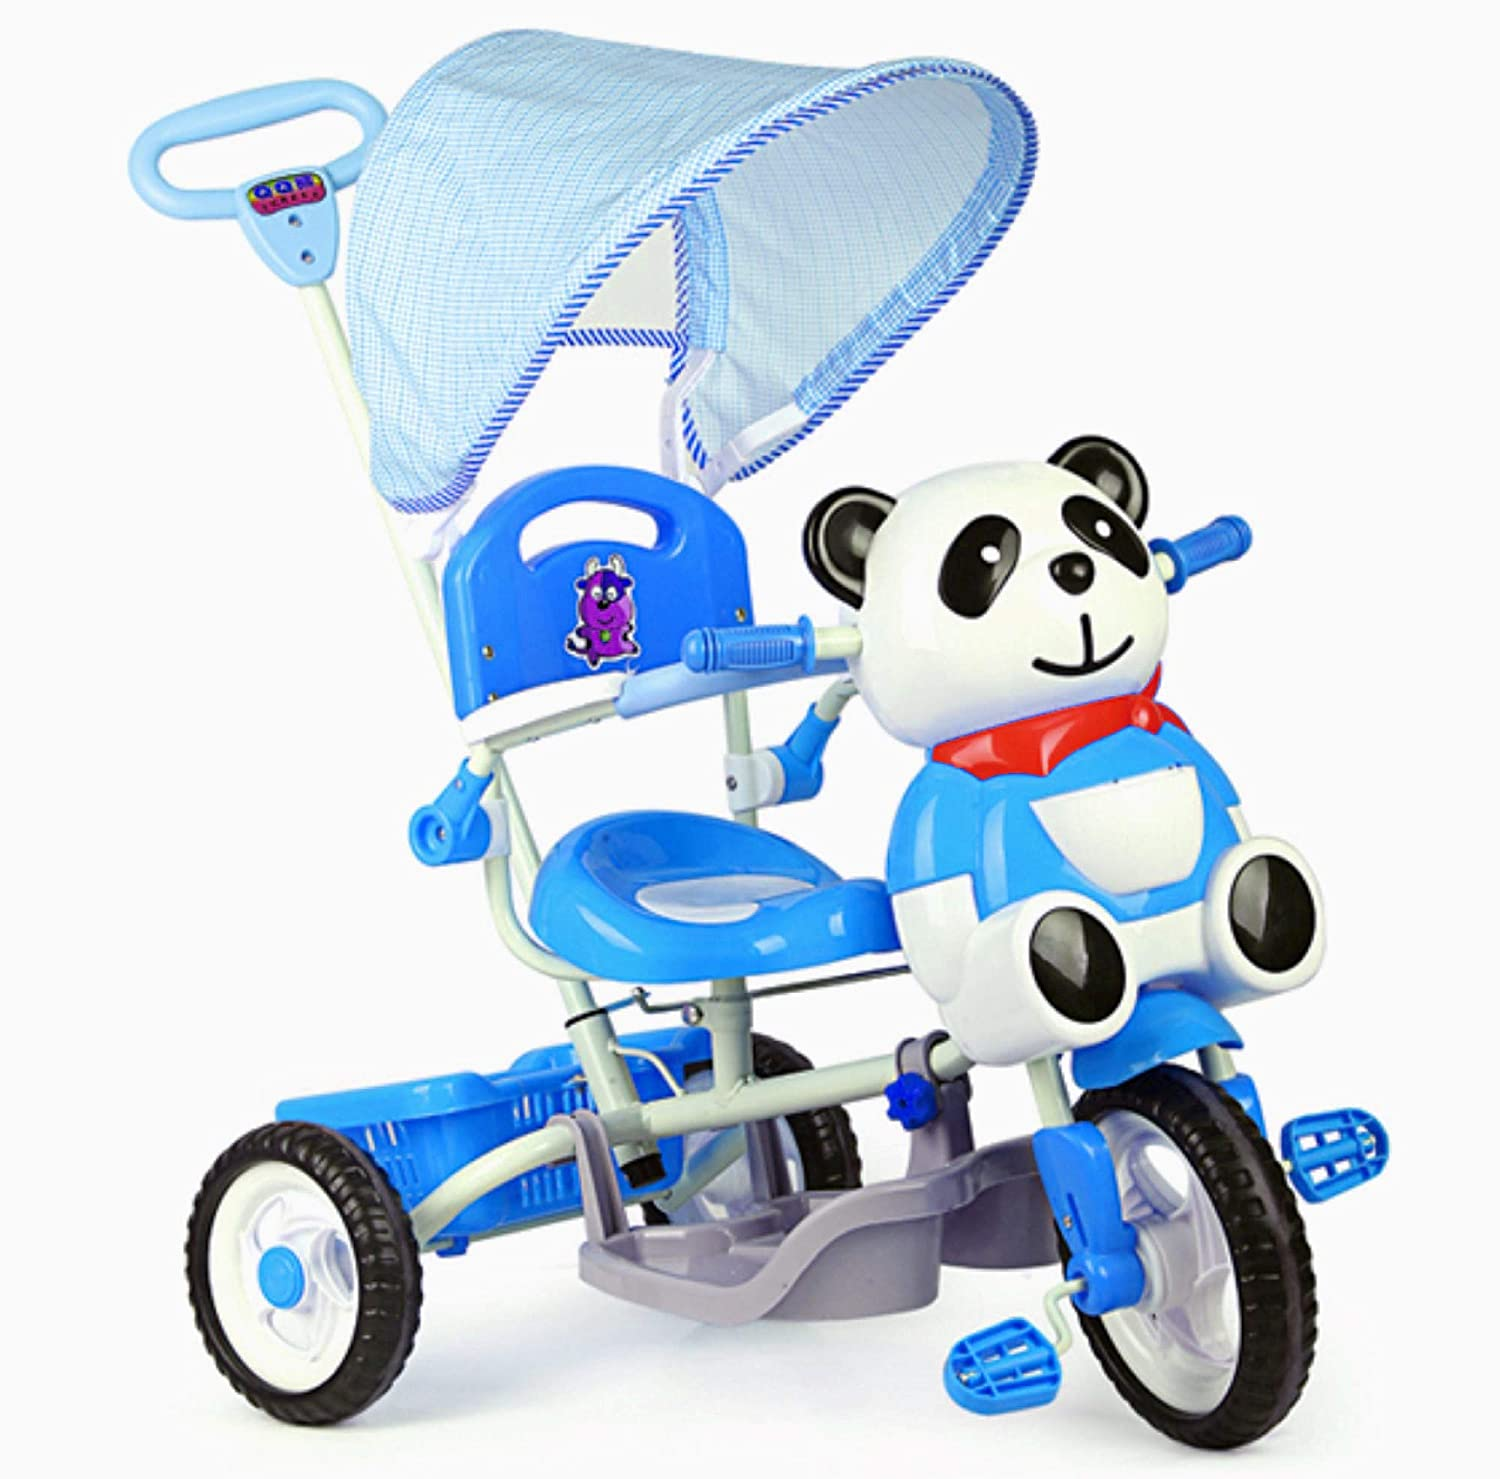 Buy Toyhouse Easy to Steer Panda Baby Tricycle with Canopy and Push Handle Steering System Blue Online at Low Prices in India - Amazon.in  sc 1 st  Amazon.in & Buy Toyhouse Easy to Steer Panda Baby Tricycle with Canopy and Push ...